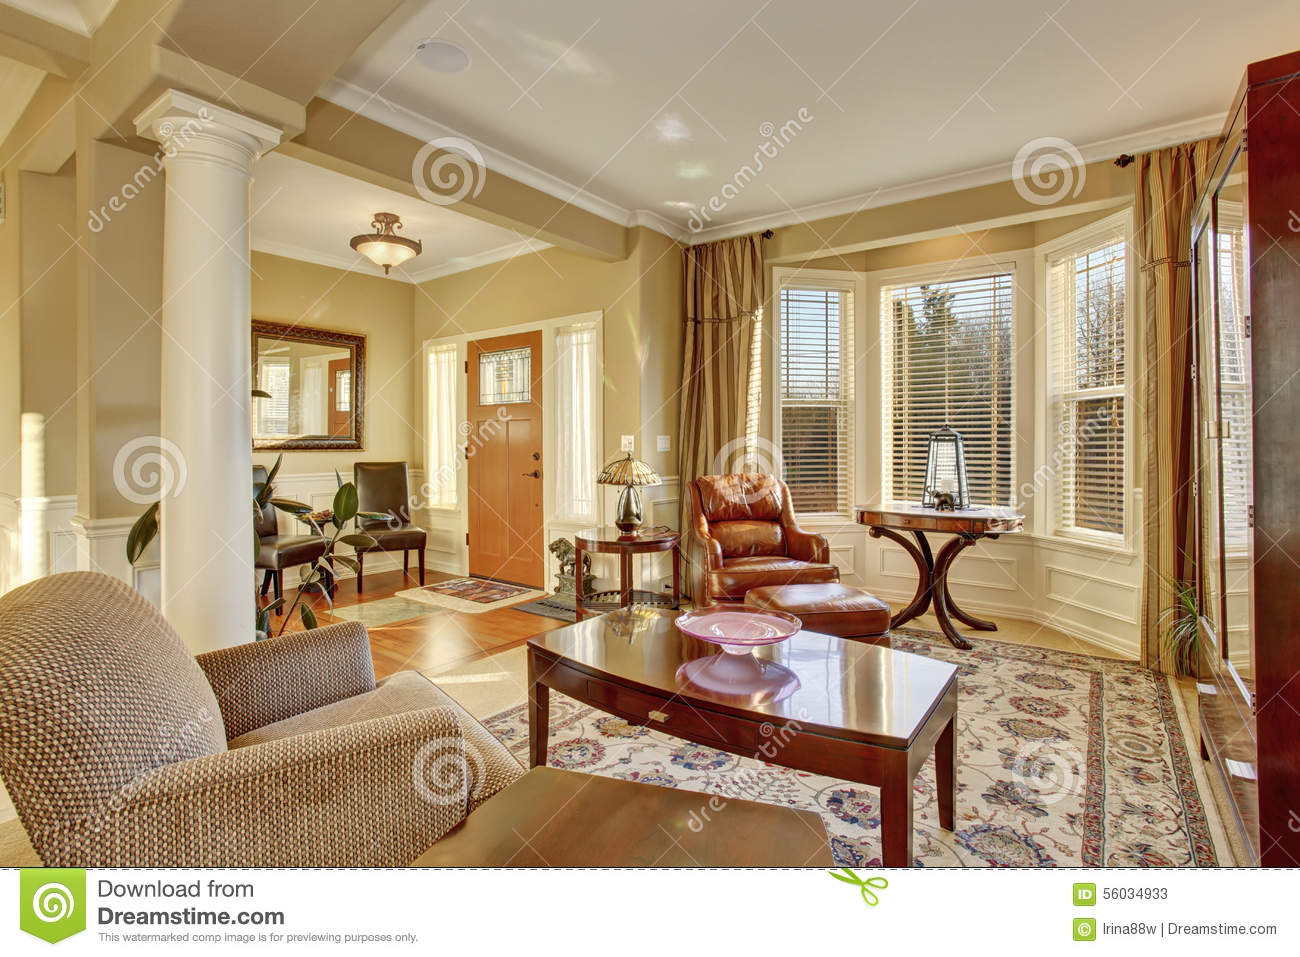 Elegant family front room with nice decor stock photo for Front room decor